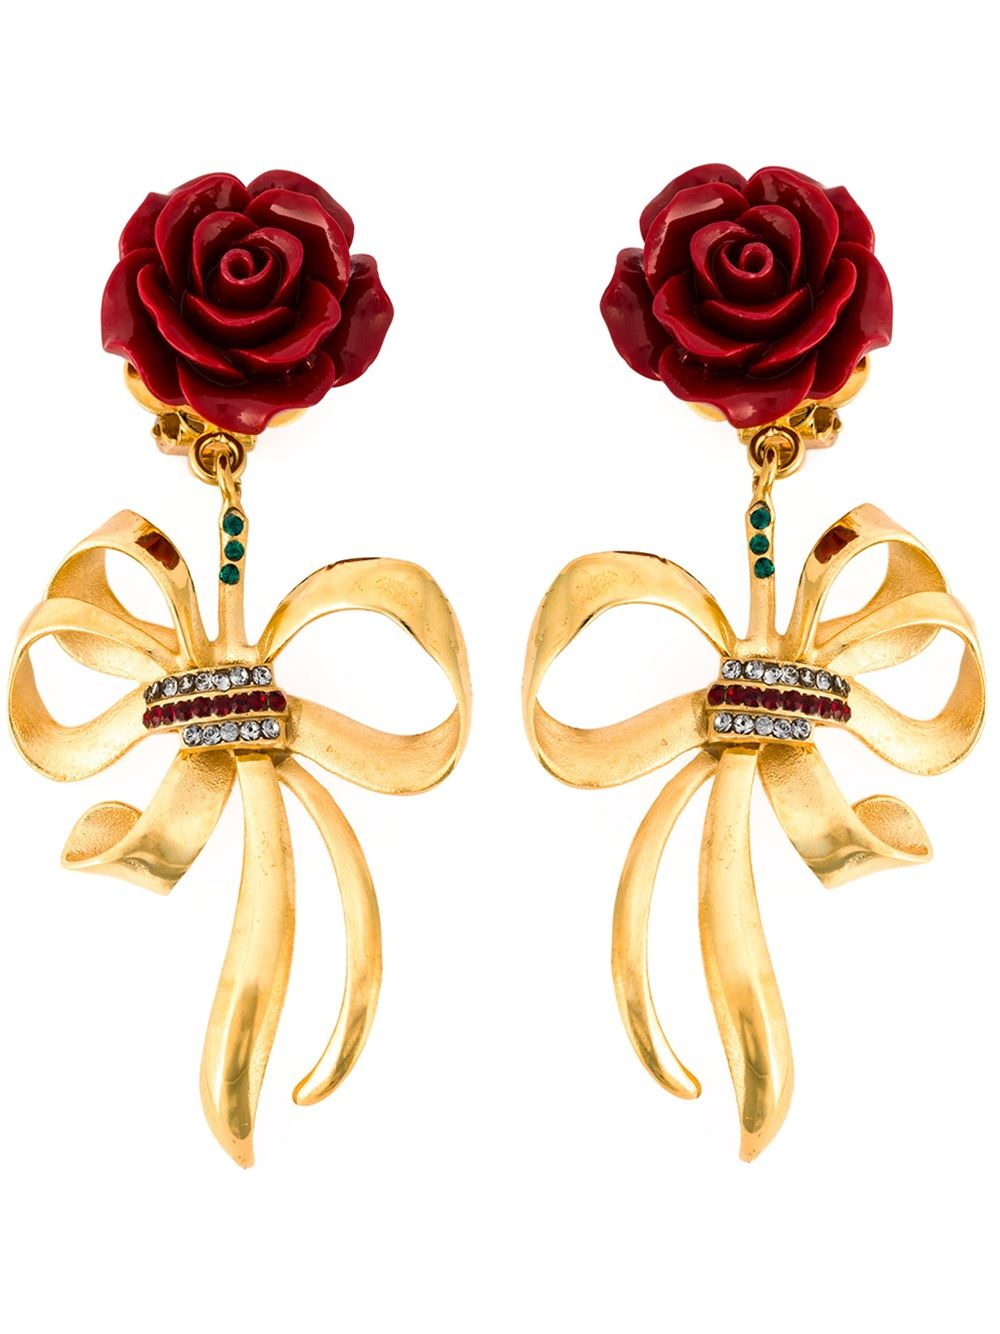 Dolce & Gabbana Rose clip-on earrings e4WTojW39x